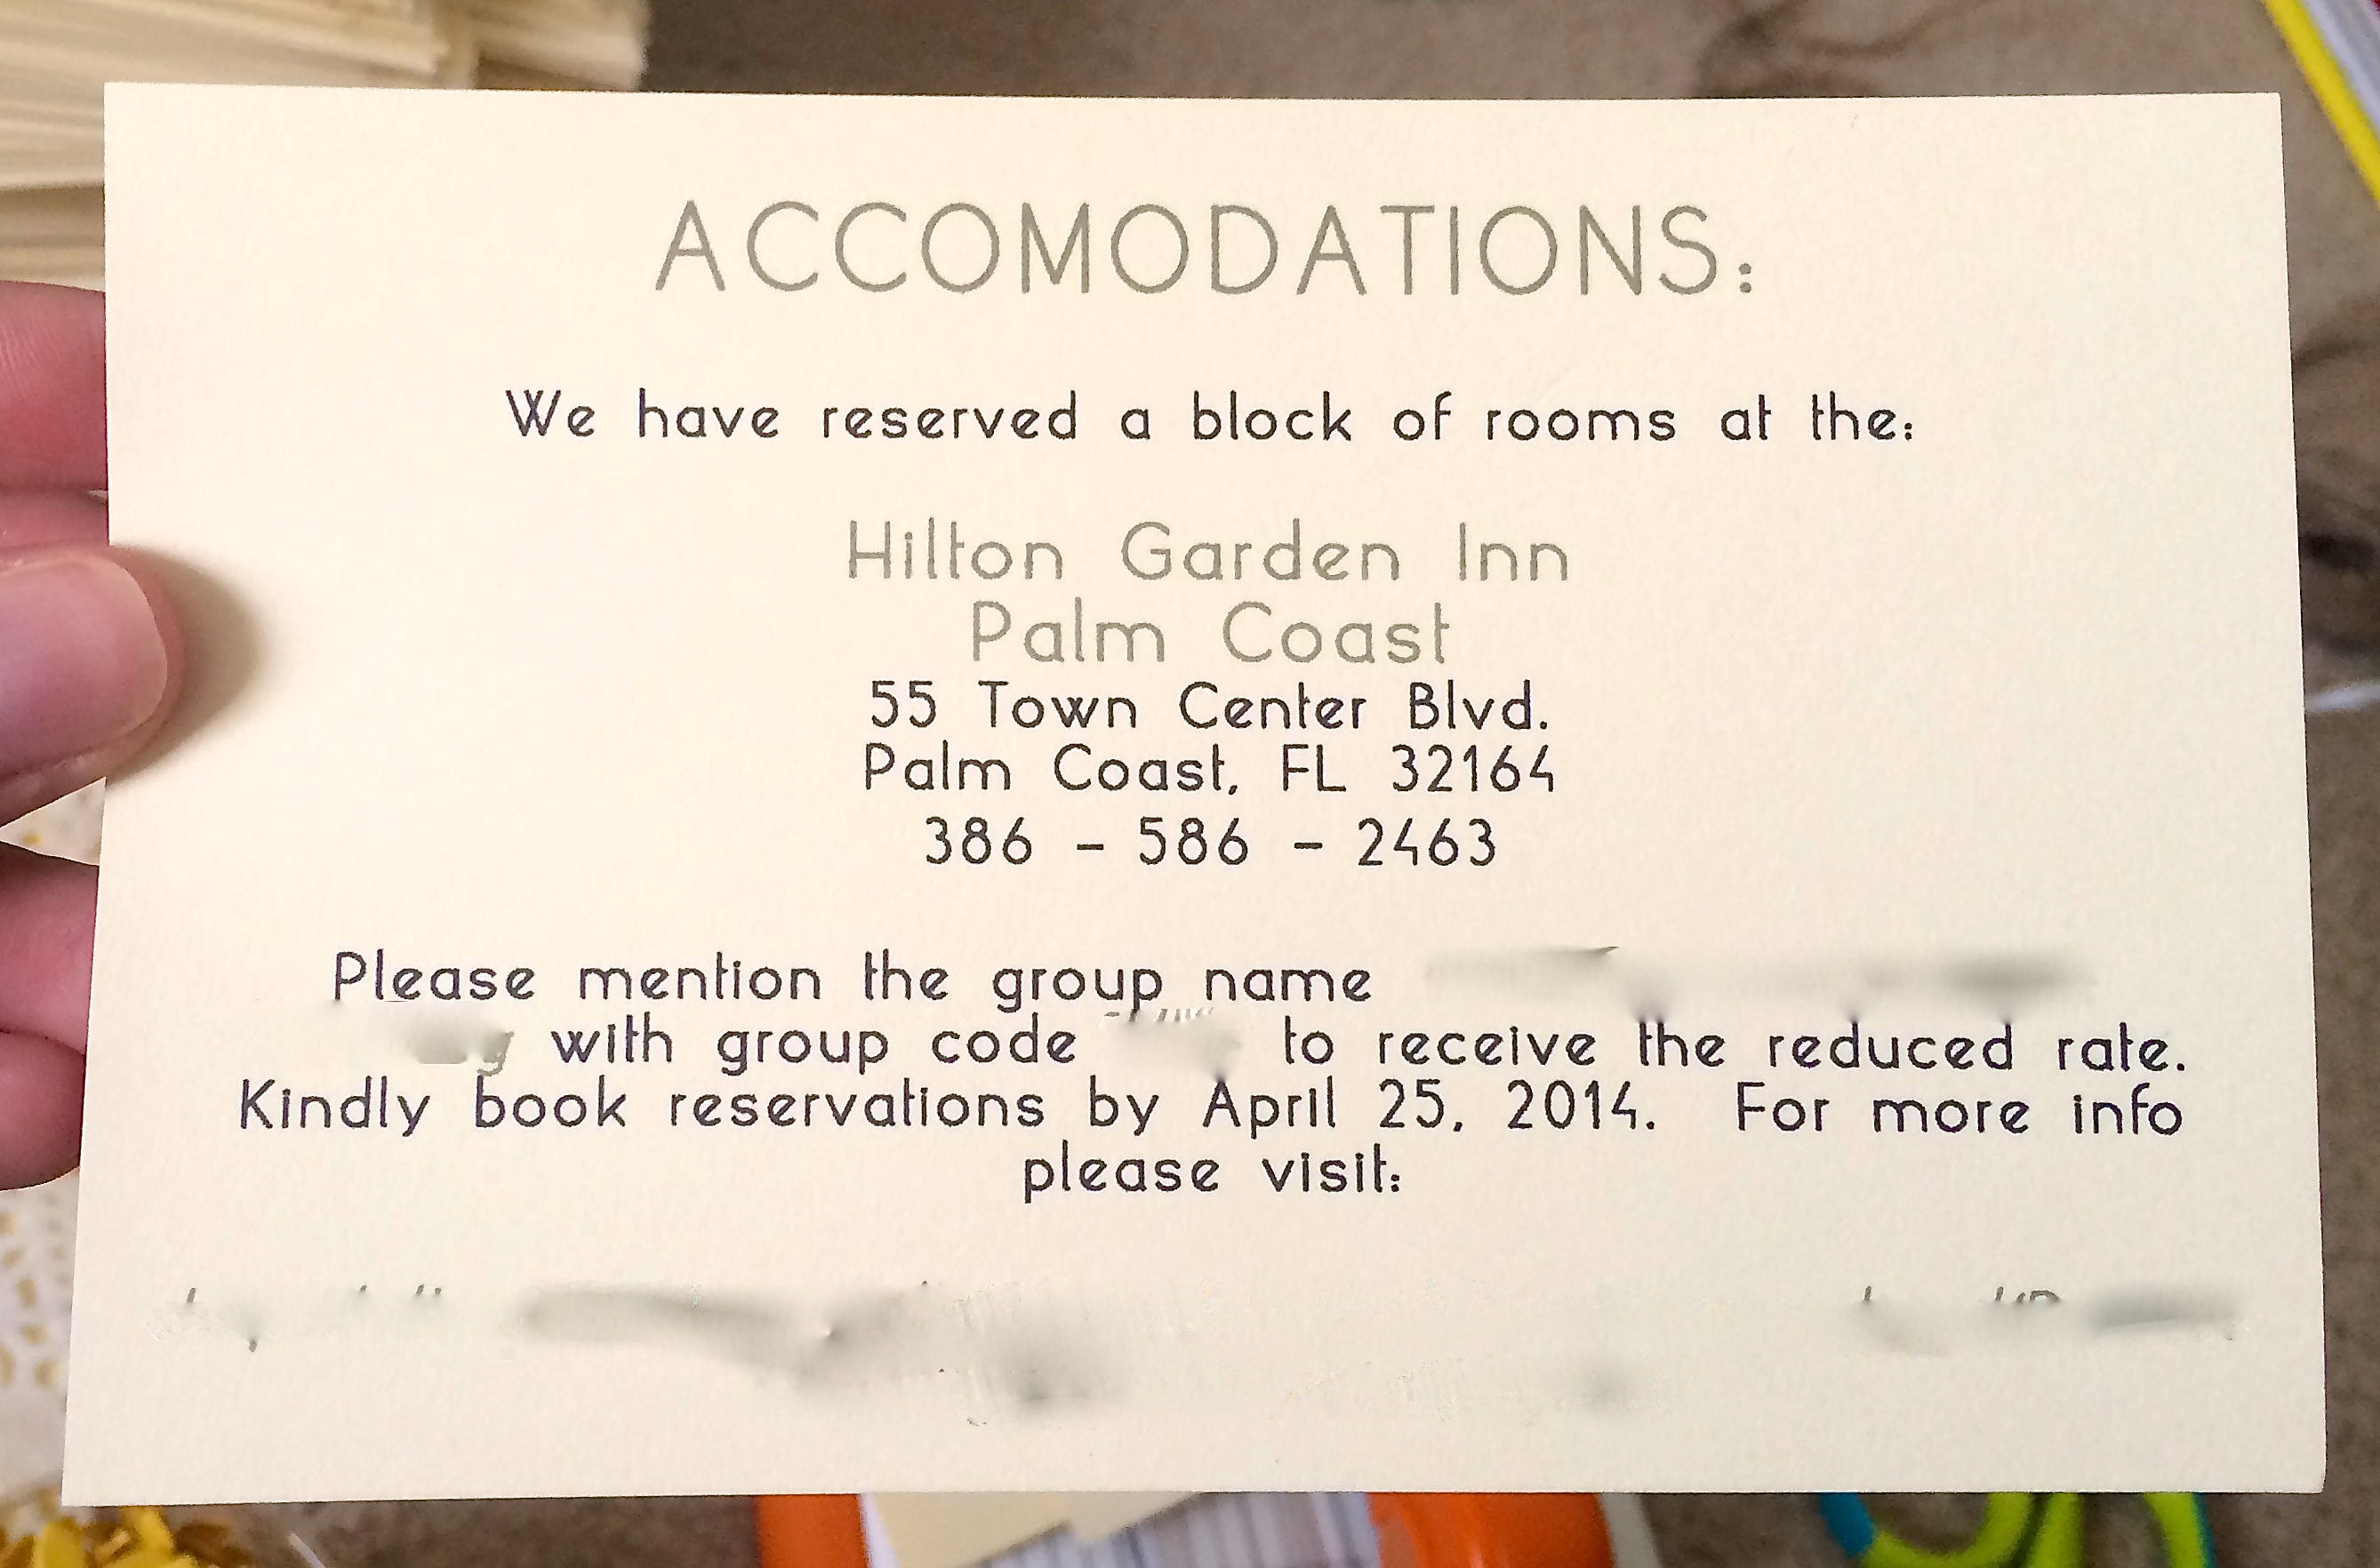 hotel accommodations for wedding guests template